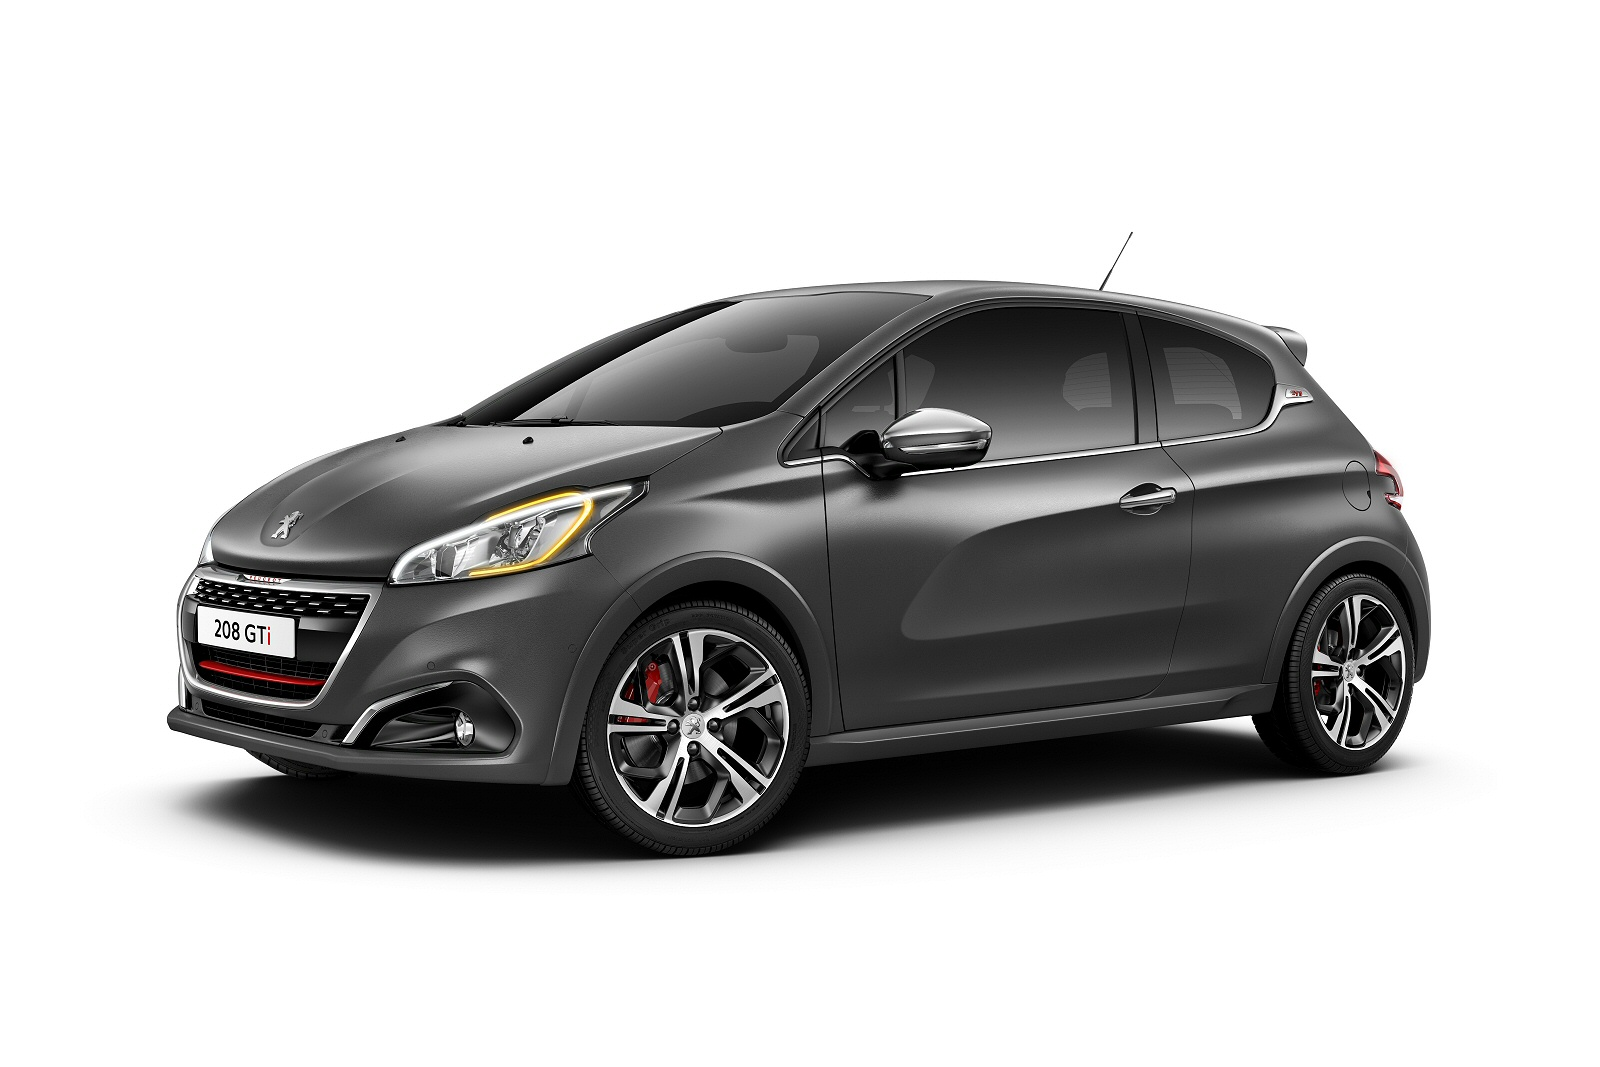 new peugeot 208 1 6 thp gti prestige 3dr petrol hatchback for sale bristol street. Black Bedroom Furniture Sets. Home Design Ideas